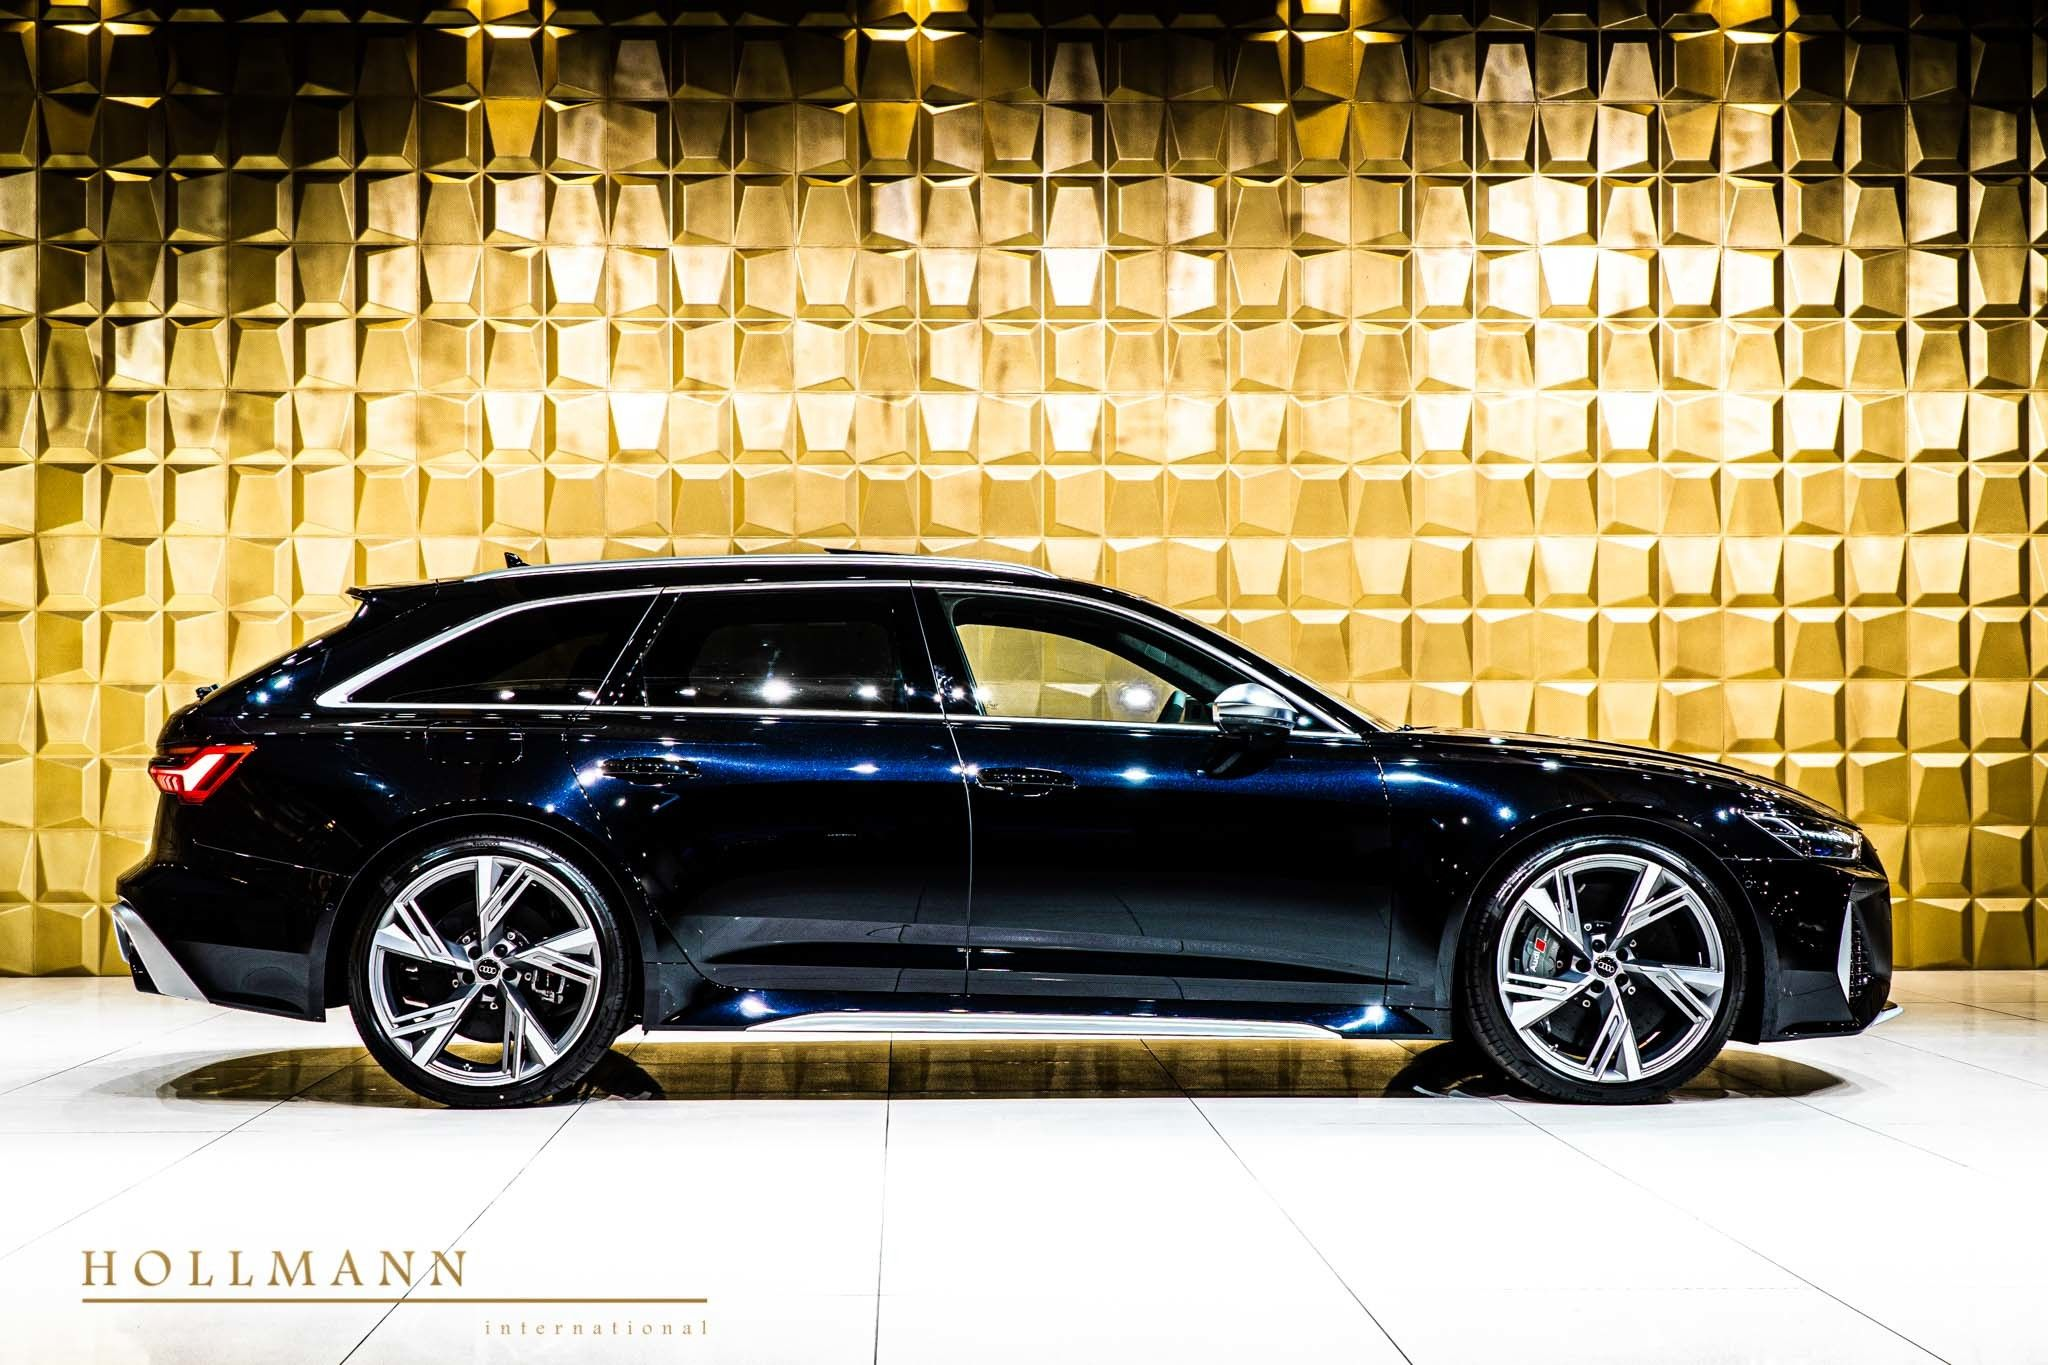 For Sale Audi Rs6 Avant Hollmann International Germany For Sale On Luxurypulse Audi Audi Rs6 How To Clean Headlights